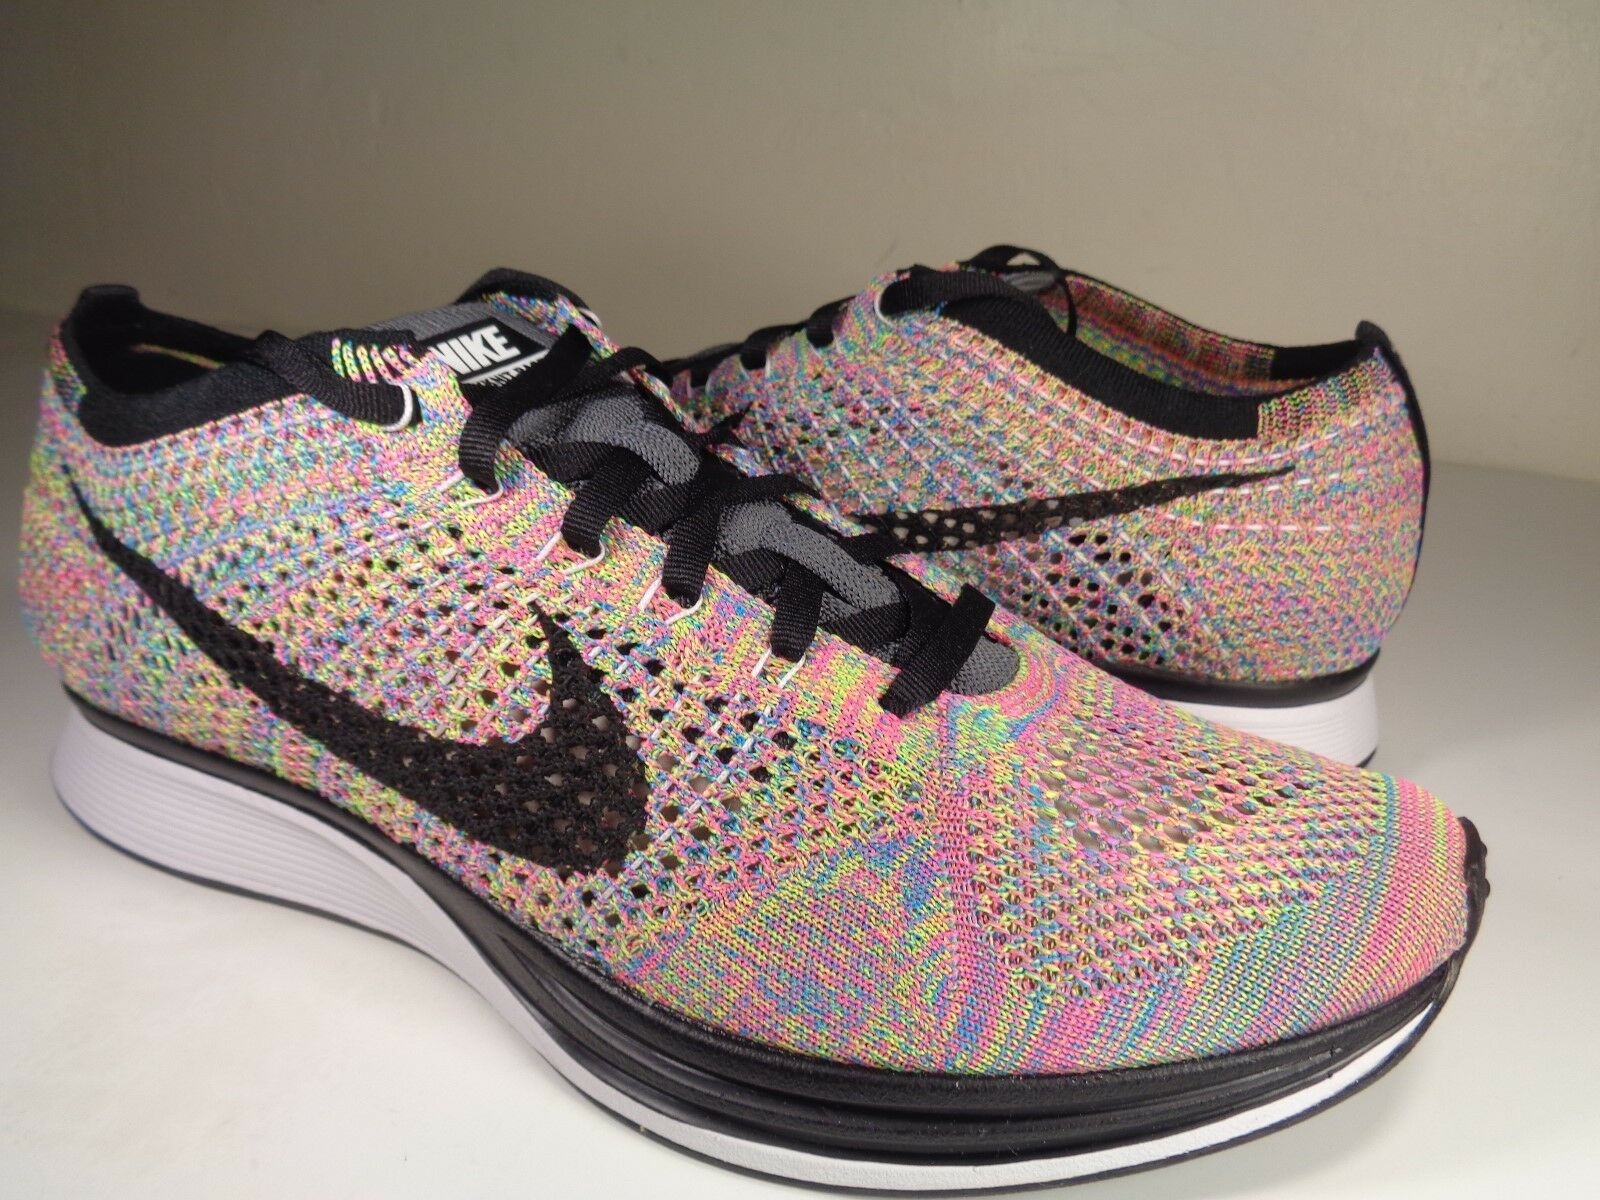 Nike Flyknit Racer 3.0 Multicolor Rainbow Grey Black Blue Price reduction Wild casual shoes